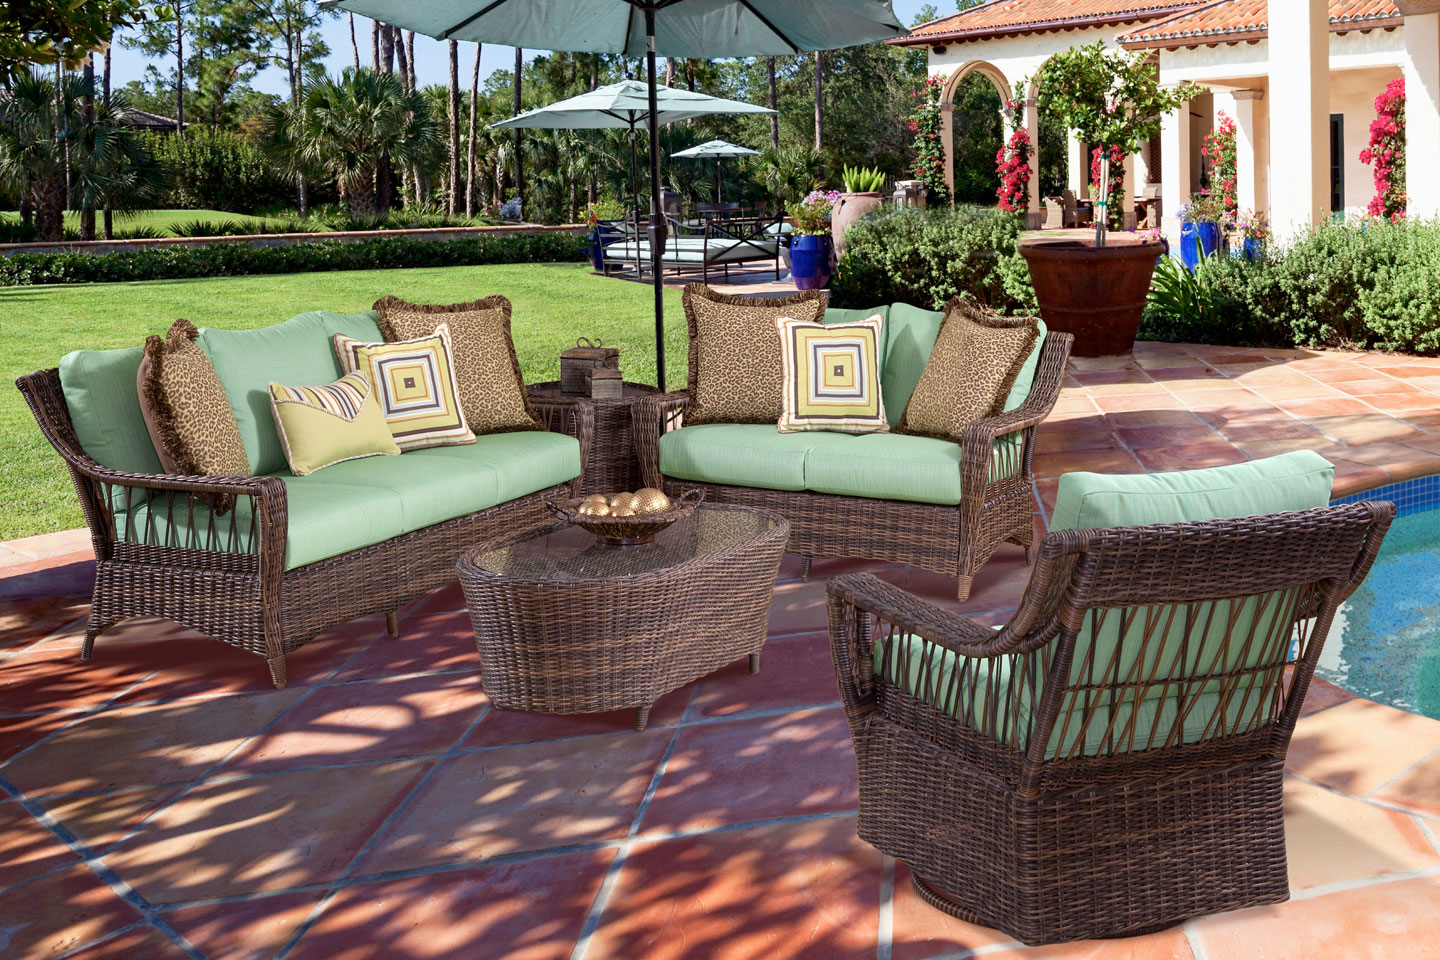 Used Wicker Patio Furniture Best Outdoor Wicker Patio Furniture Sets Decor Wicker Outdoor